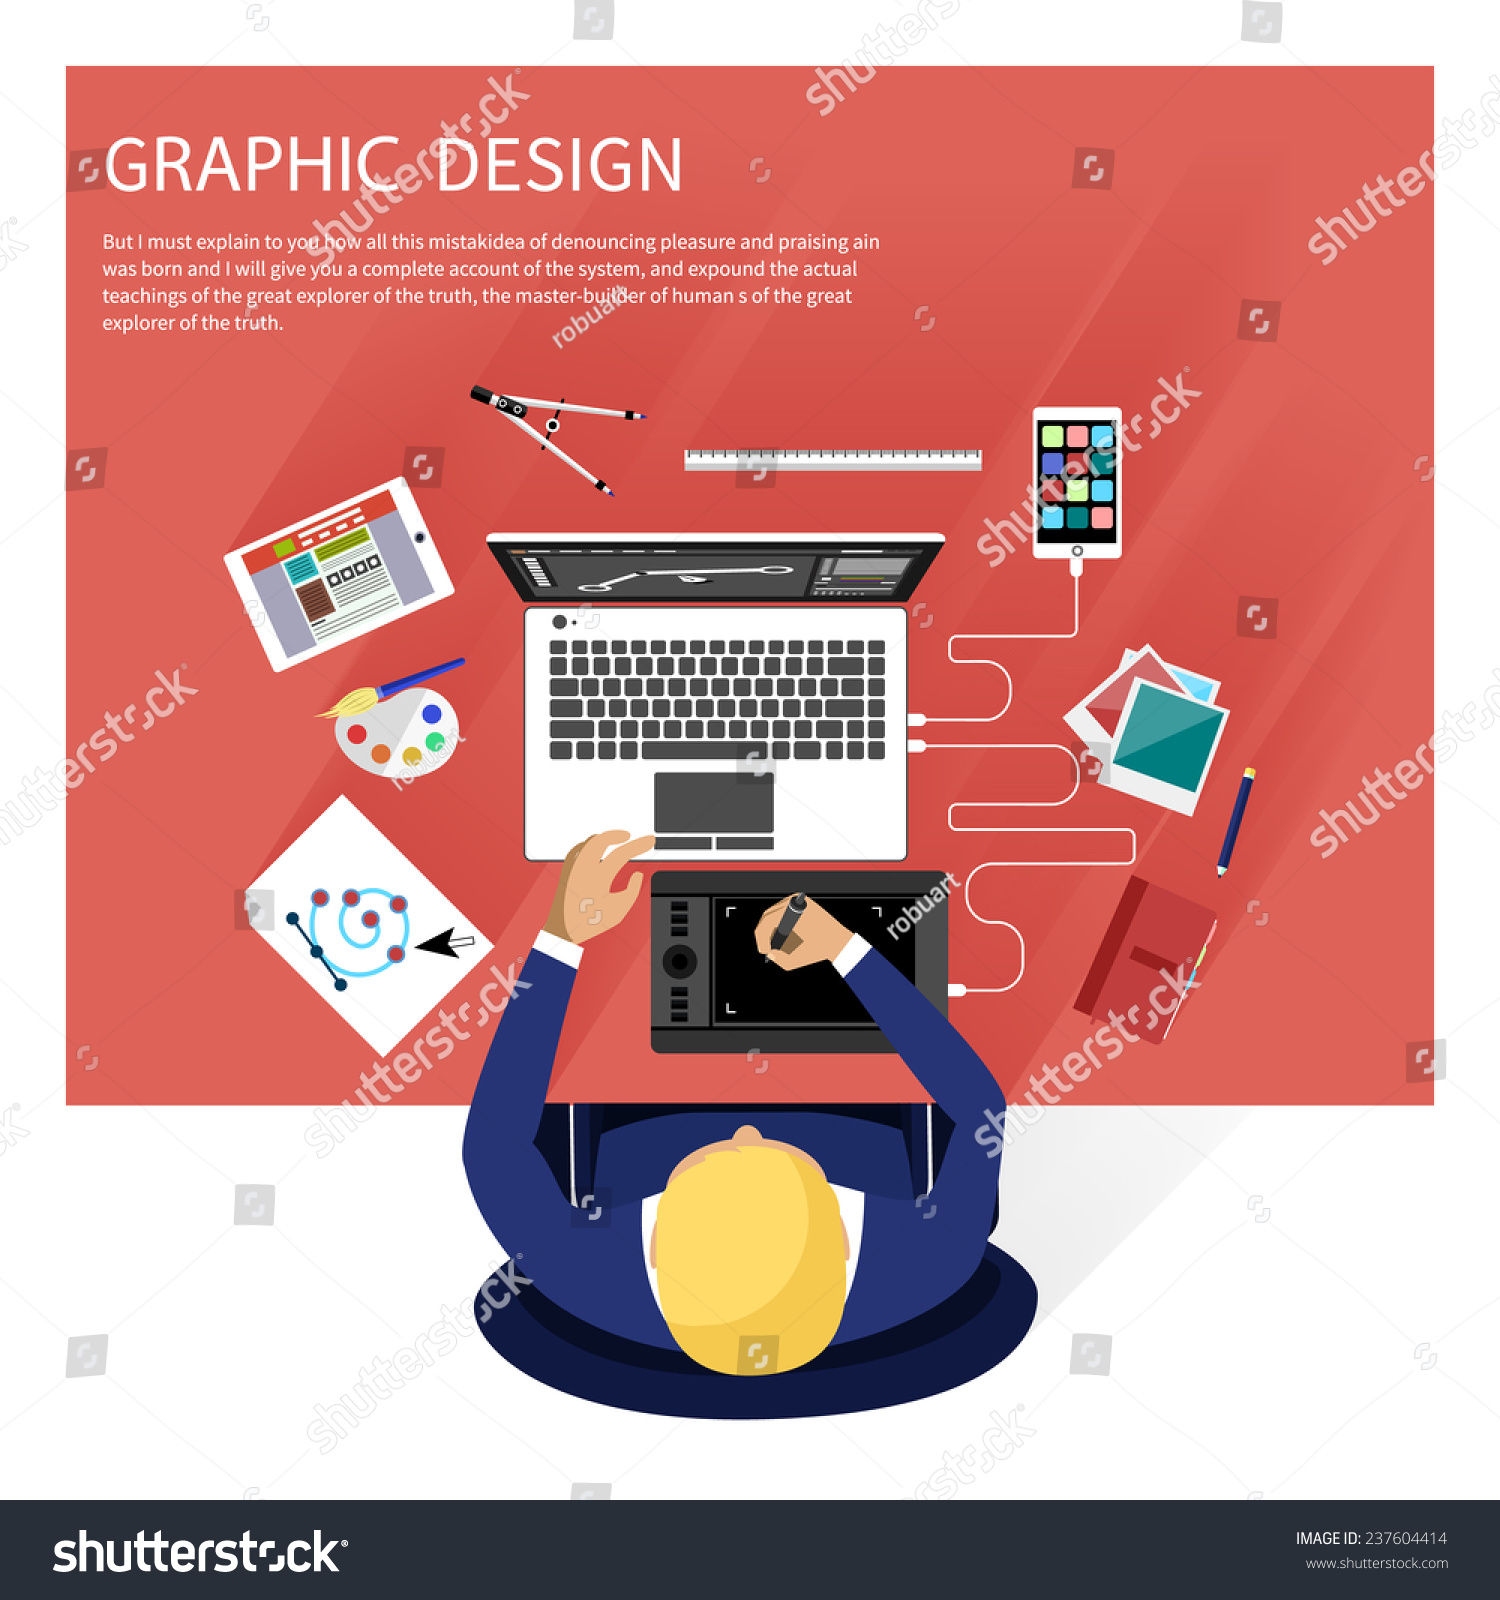 Concept graphic design designer tools software stock for Program design tools